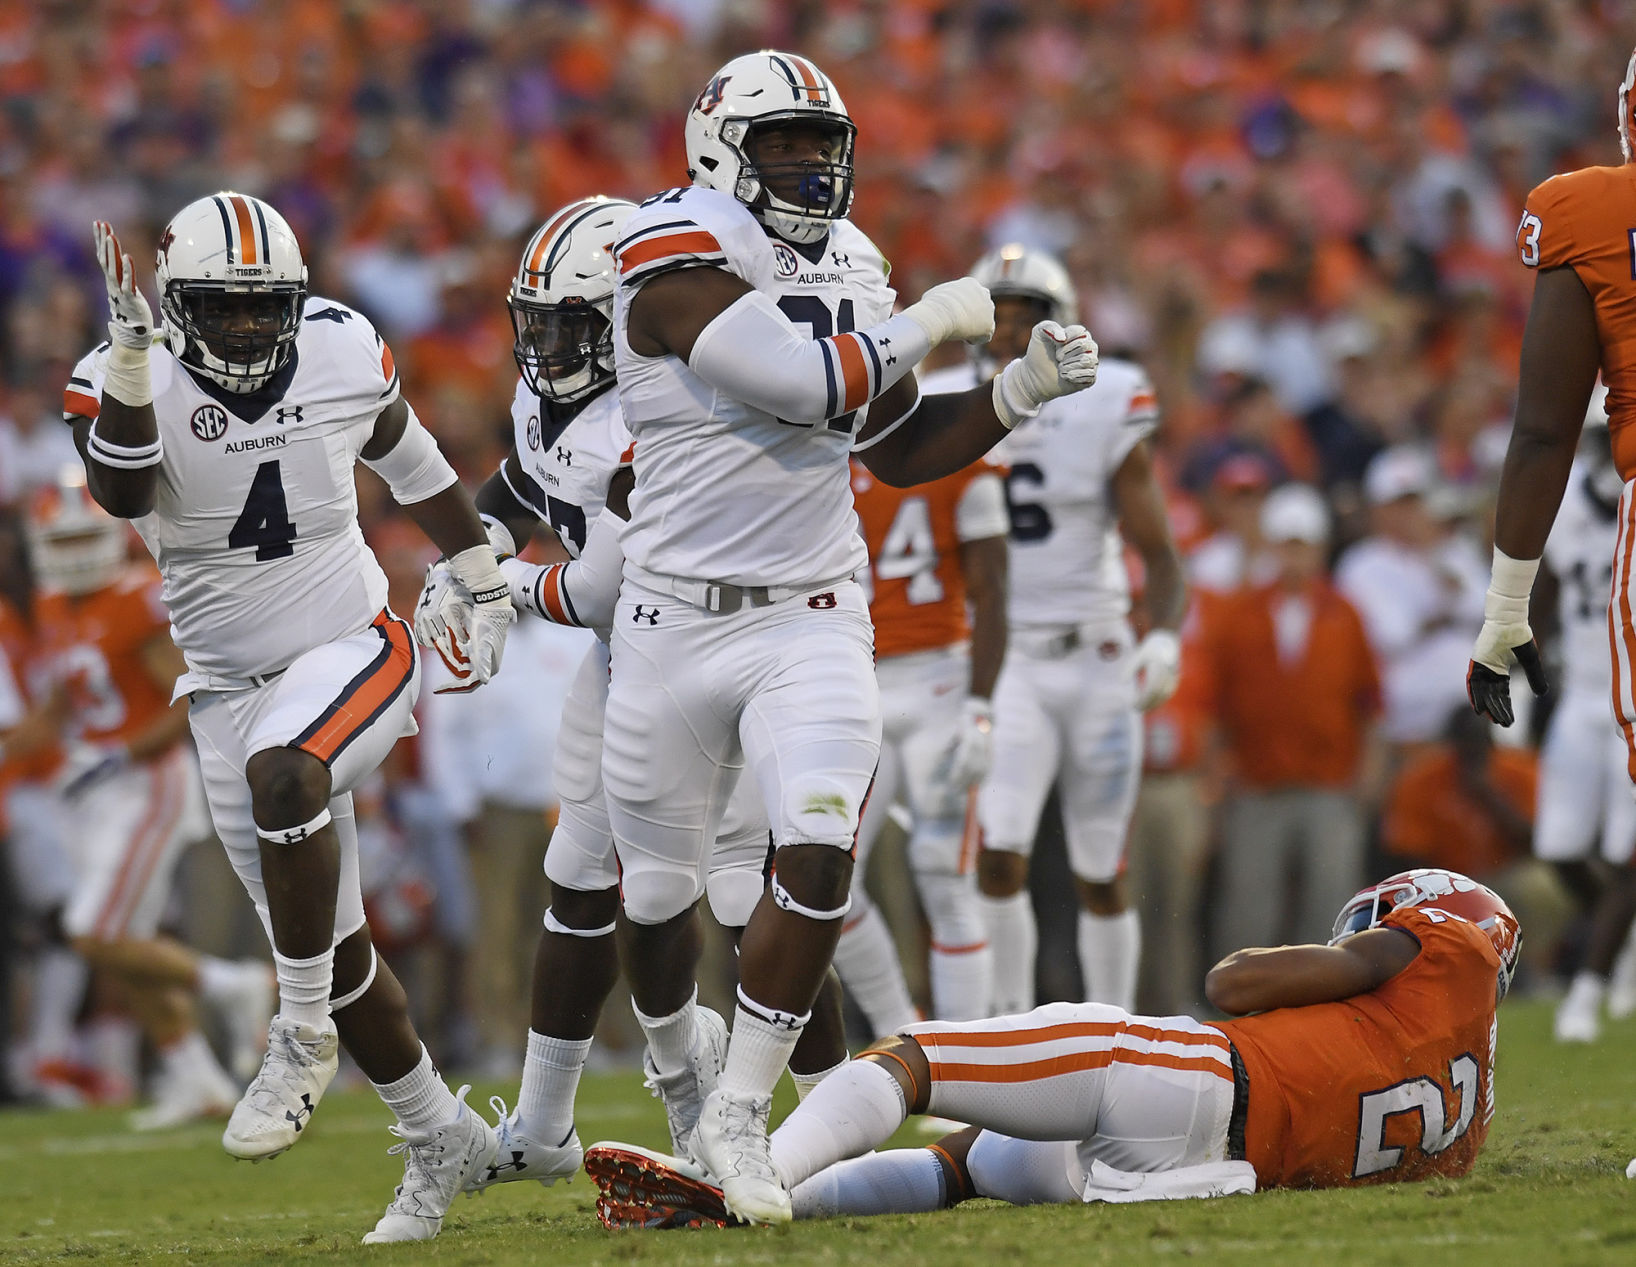 What Gus Malzahn said after Auburn's disappointing loss at Clemson